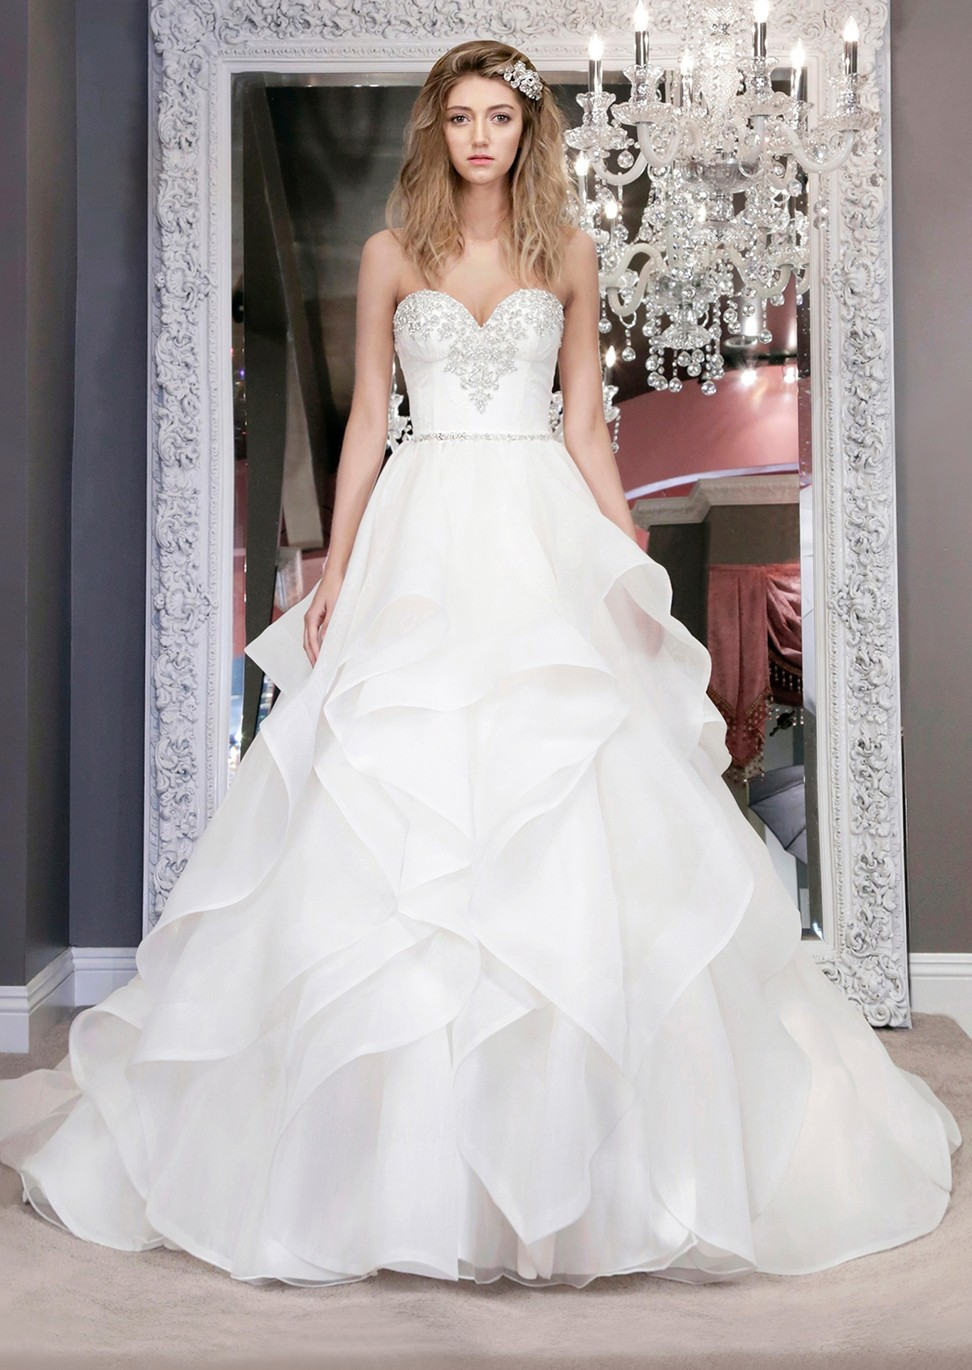 73638ad0dfc Why brides are choosing wedding gowns that offer two looks in one ...